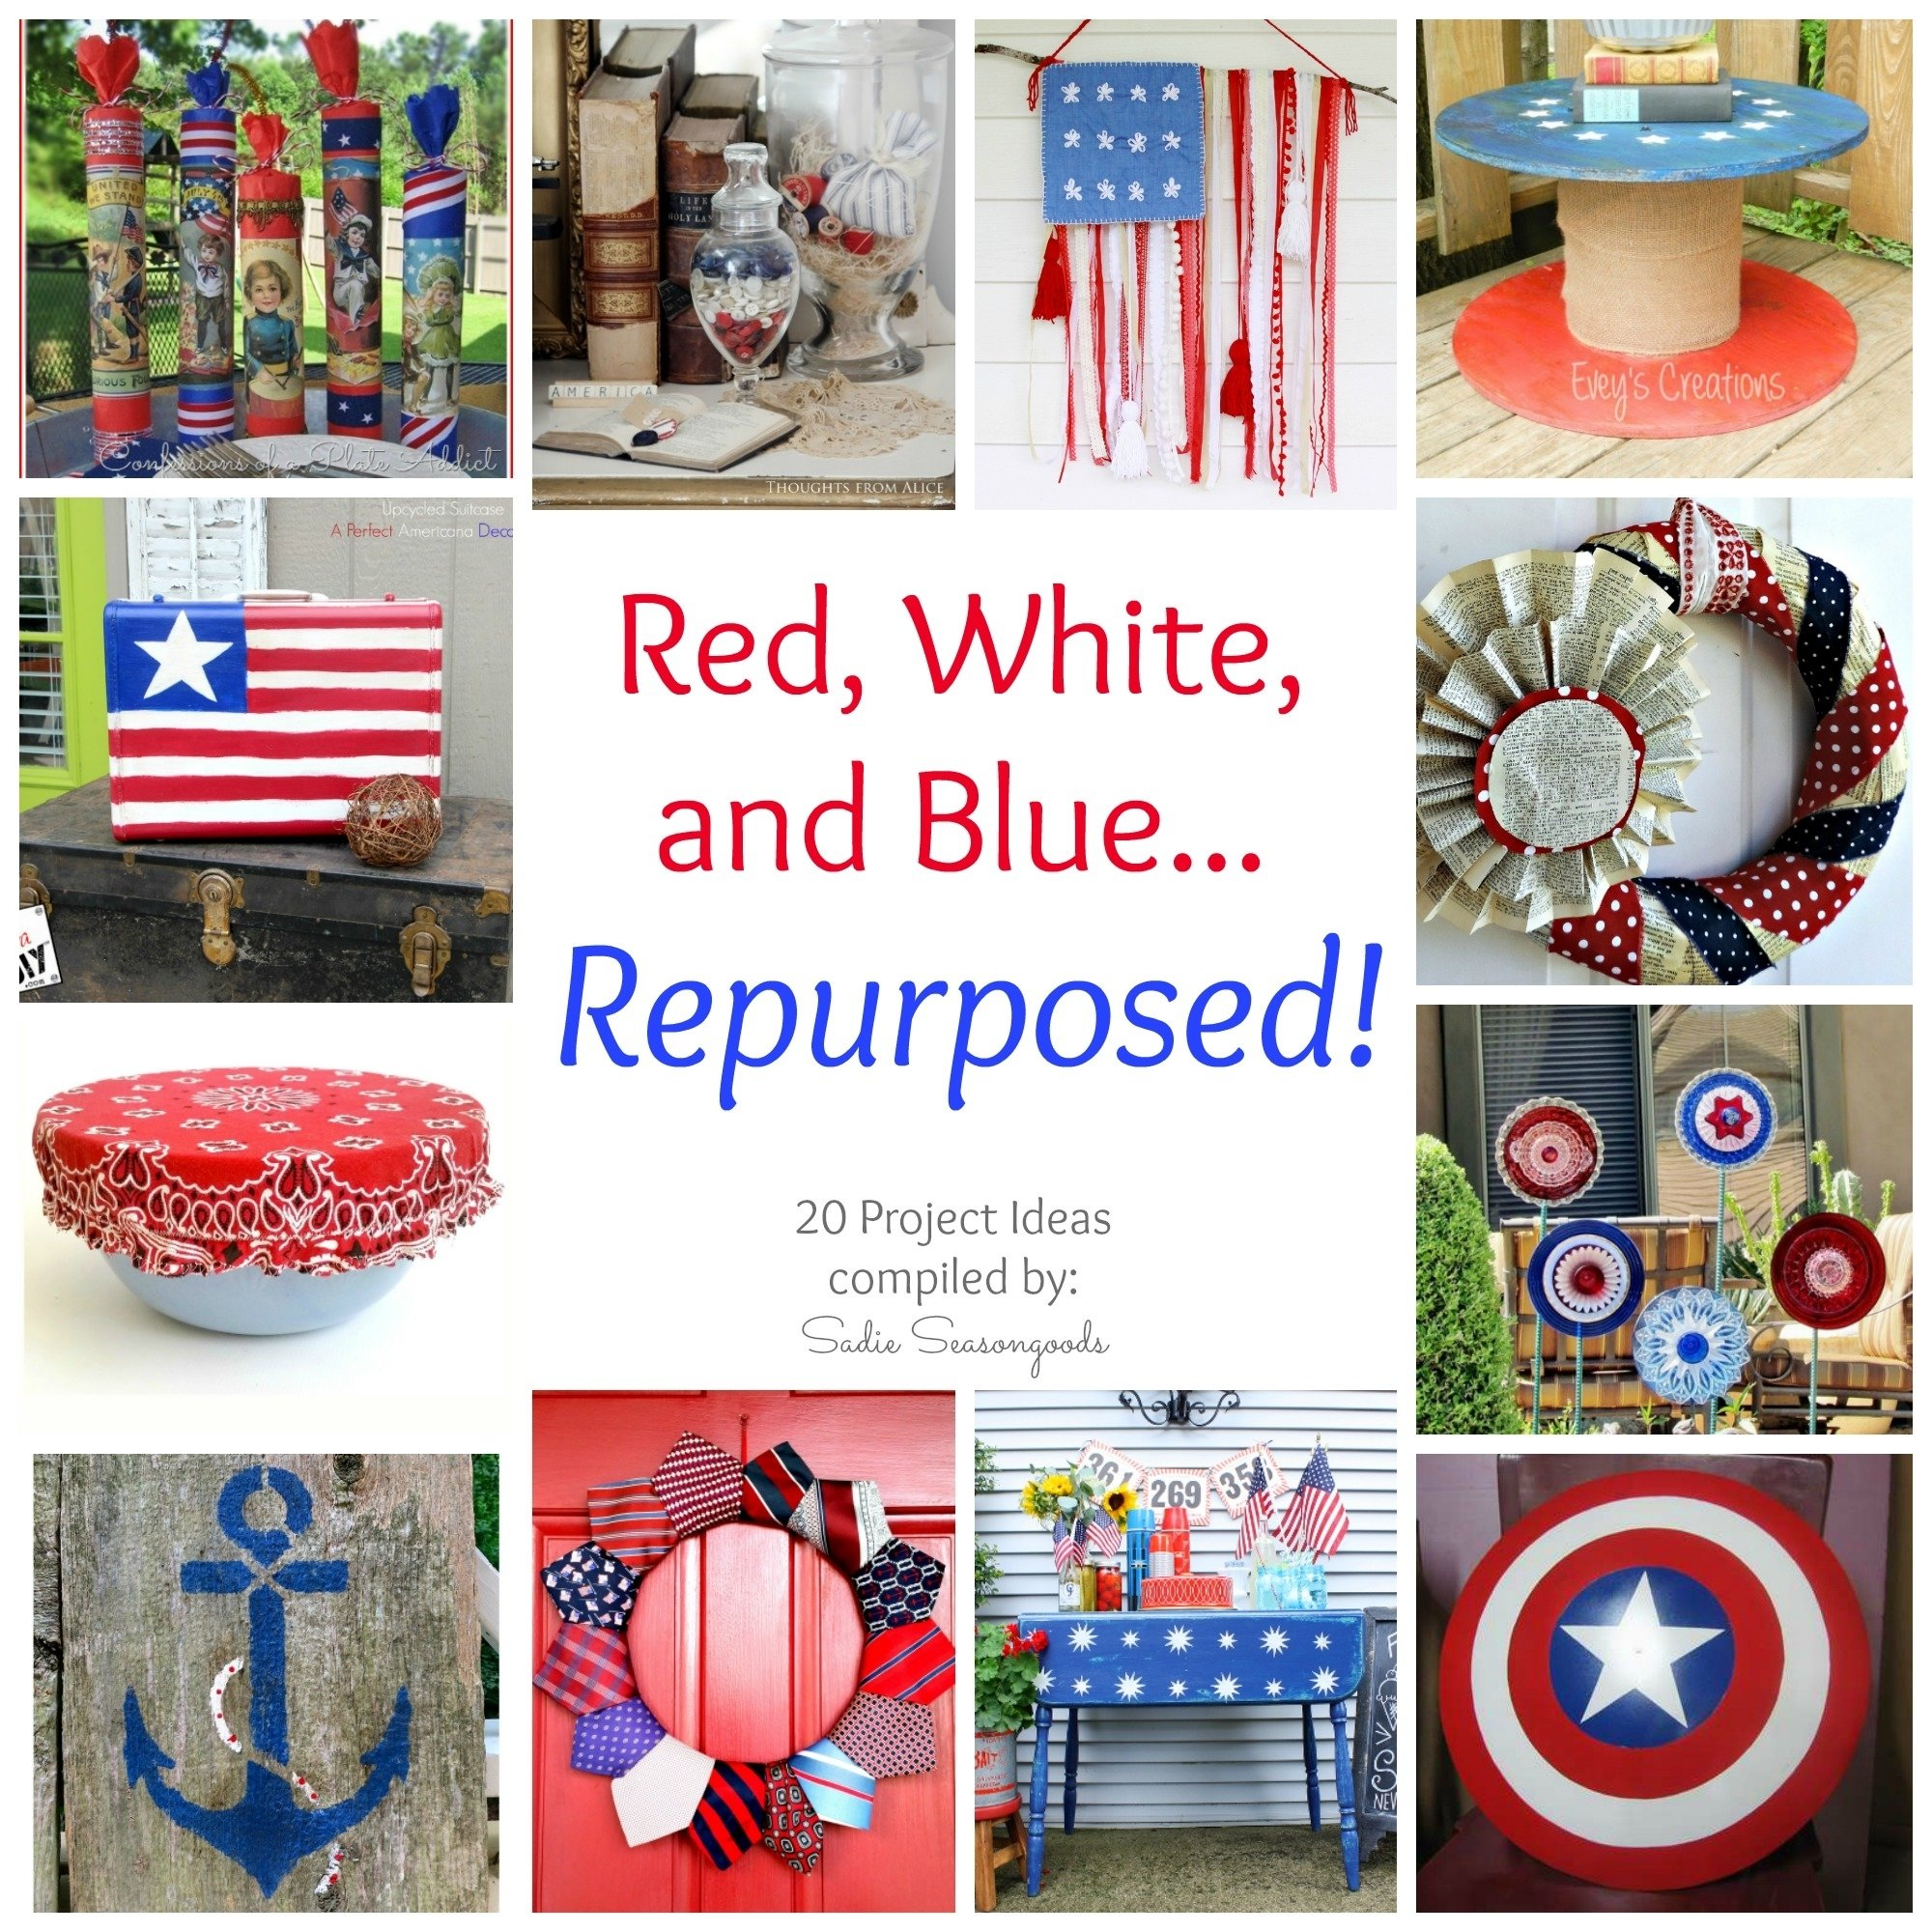 10 Beautiful Red White And Blue Party Ideas diy repurposed and upcycled patriotic project ideas 2020